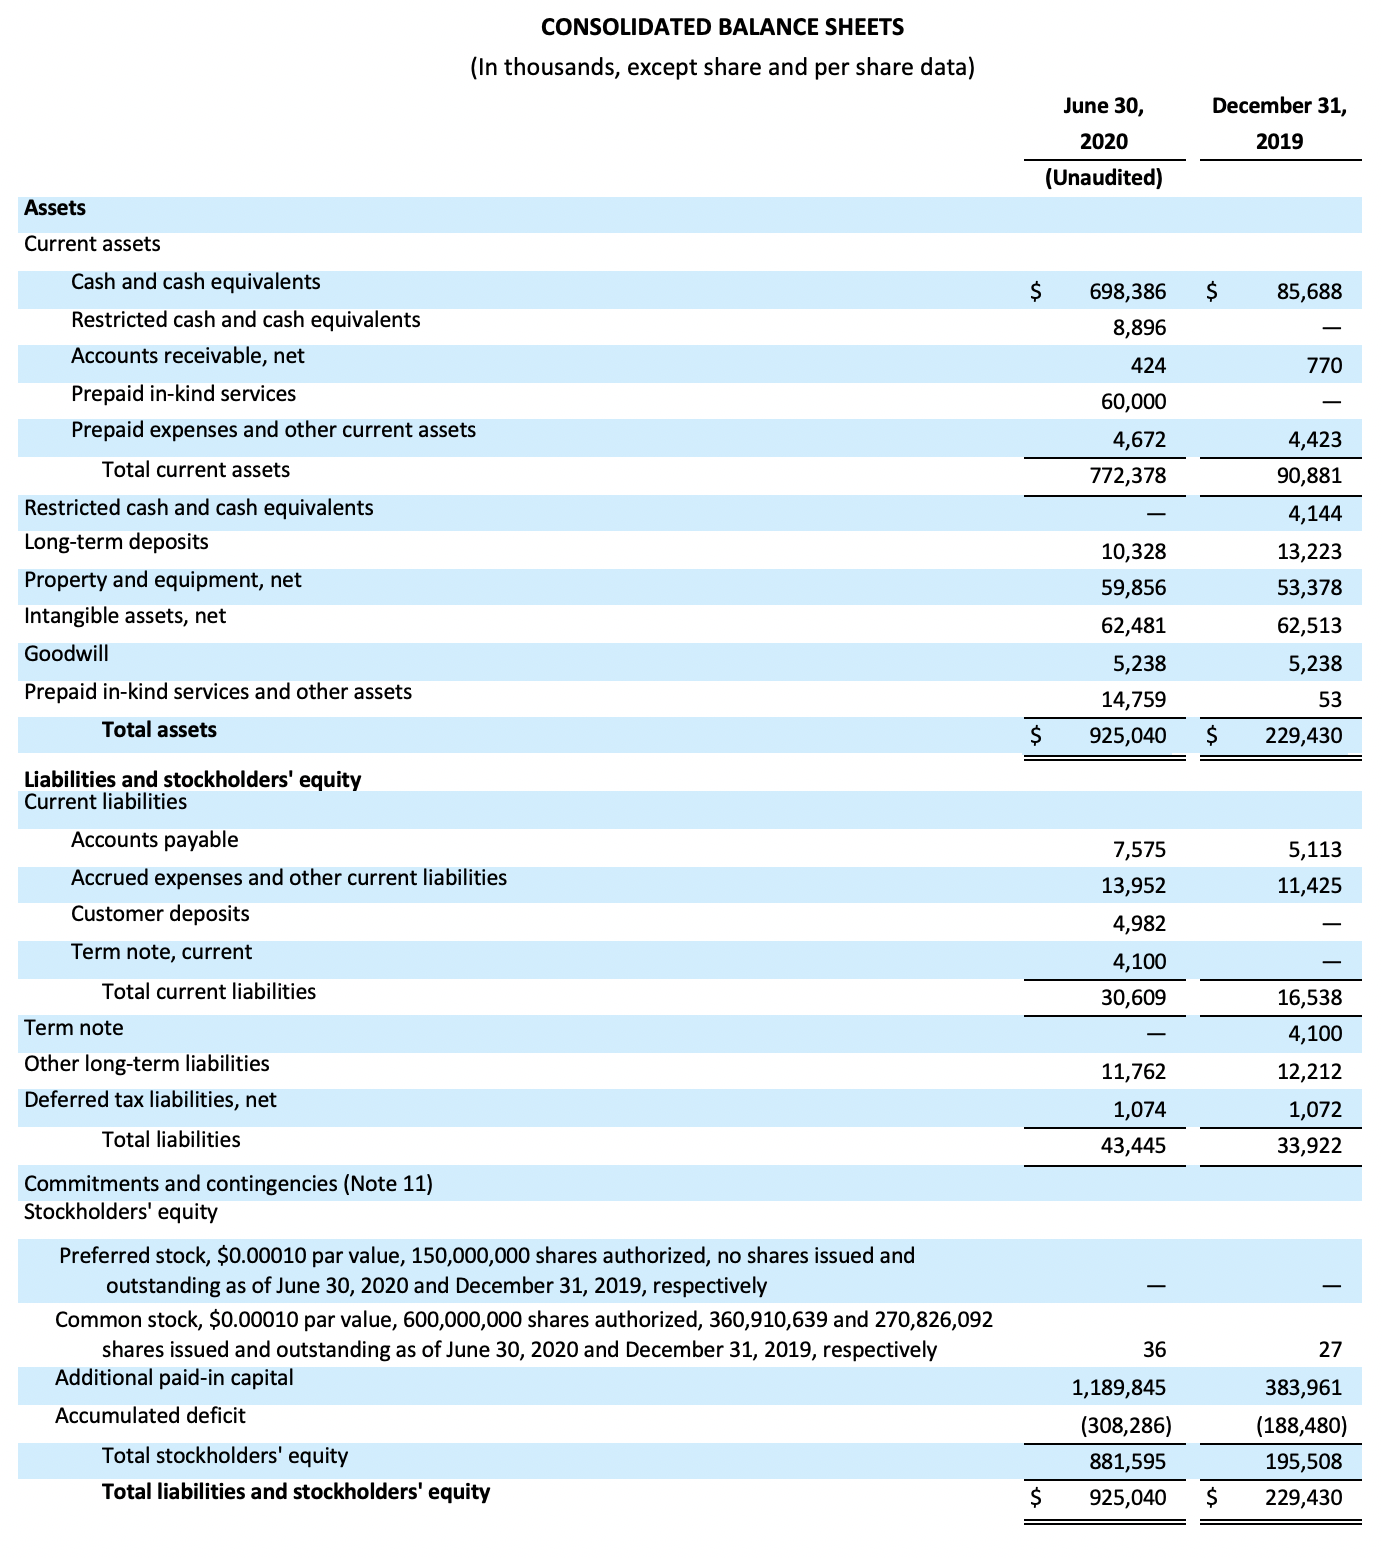 3CONSOLIDATED BALANCE SHEETS